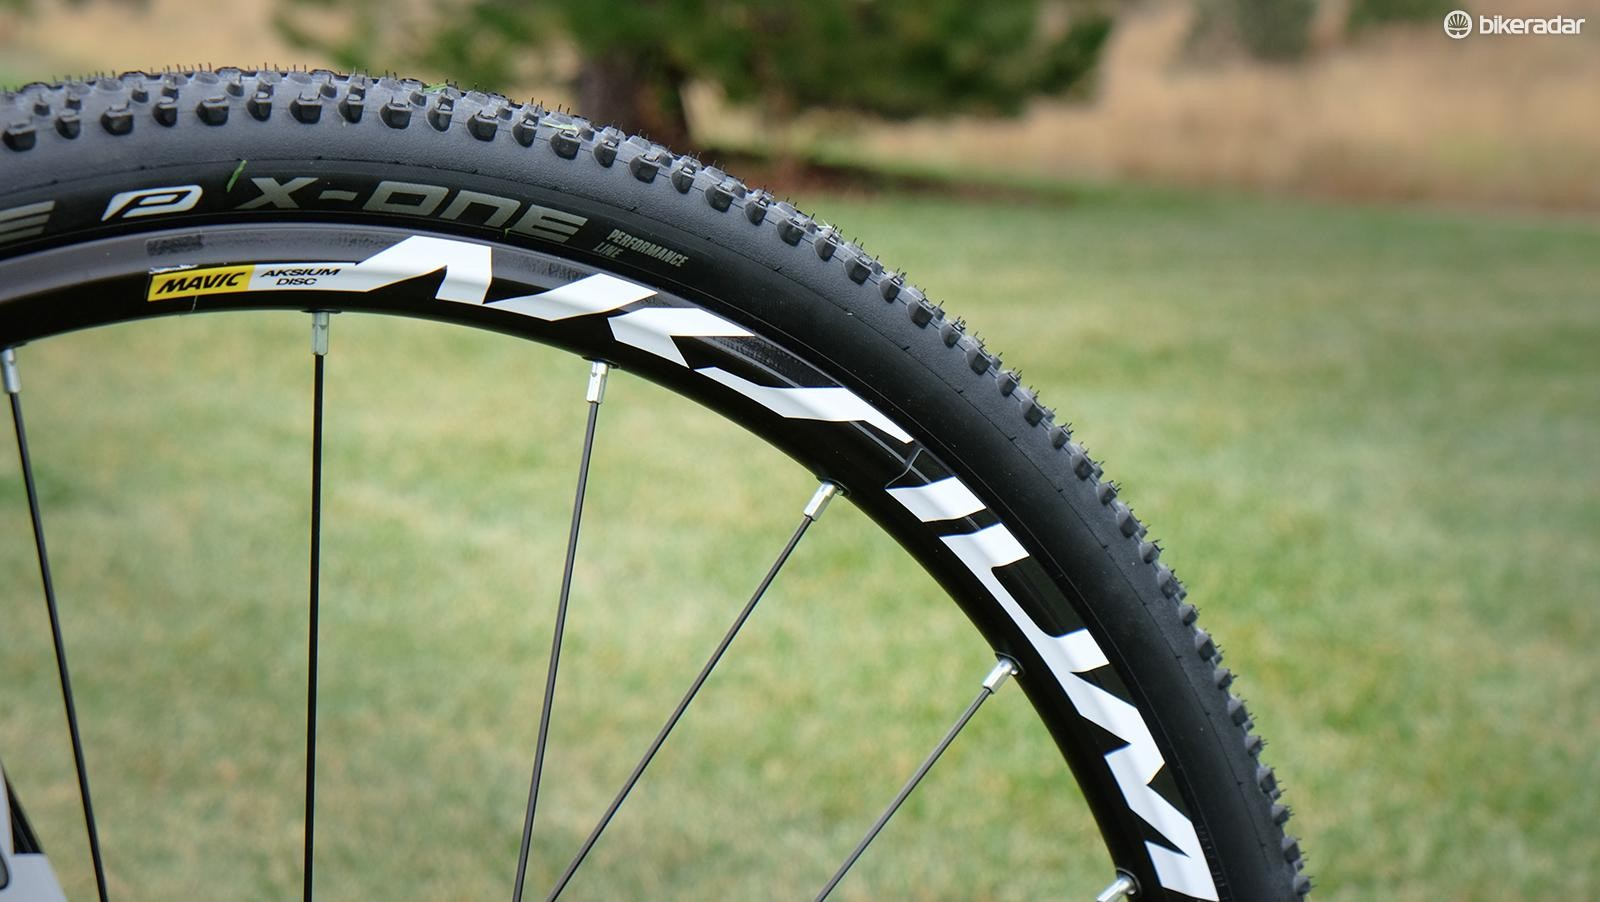 The stock tires perform well enough, but this bike really needs a tubeless-compatible set of wheels